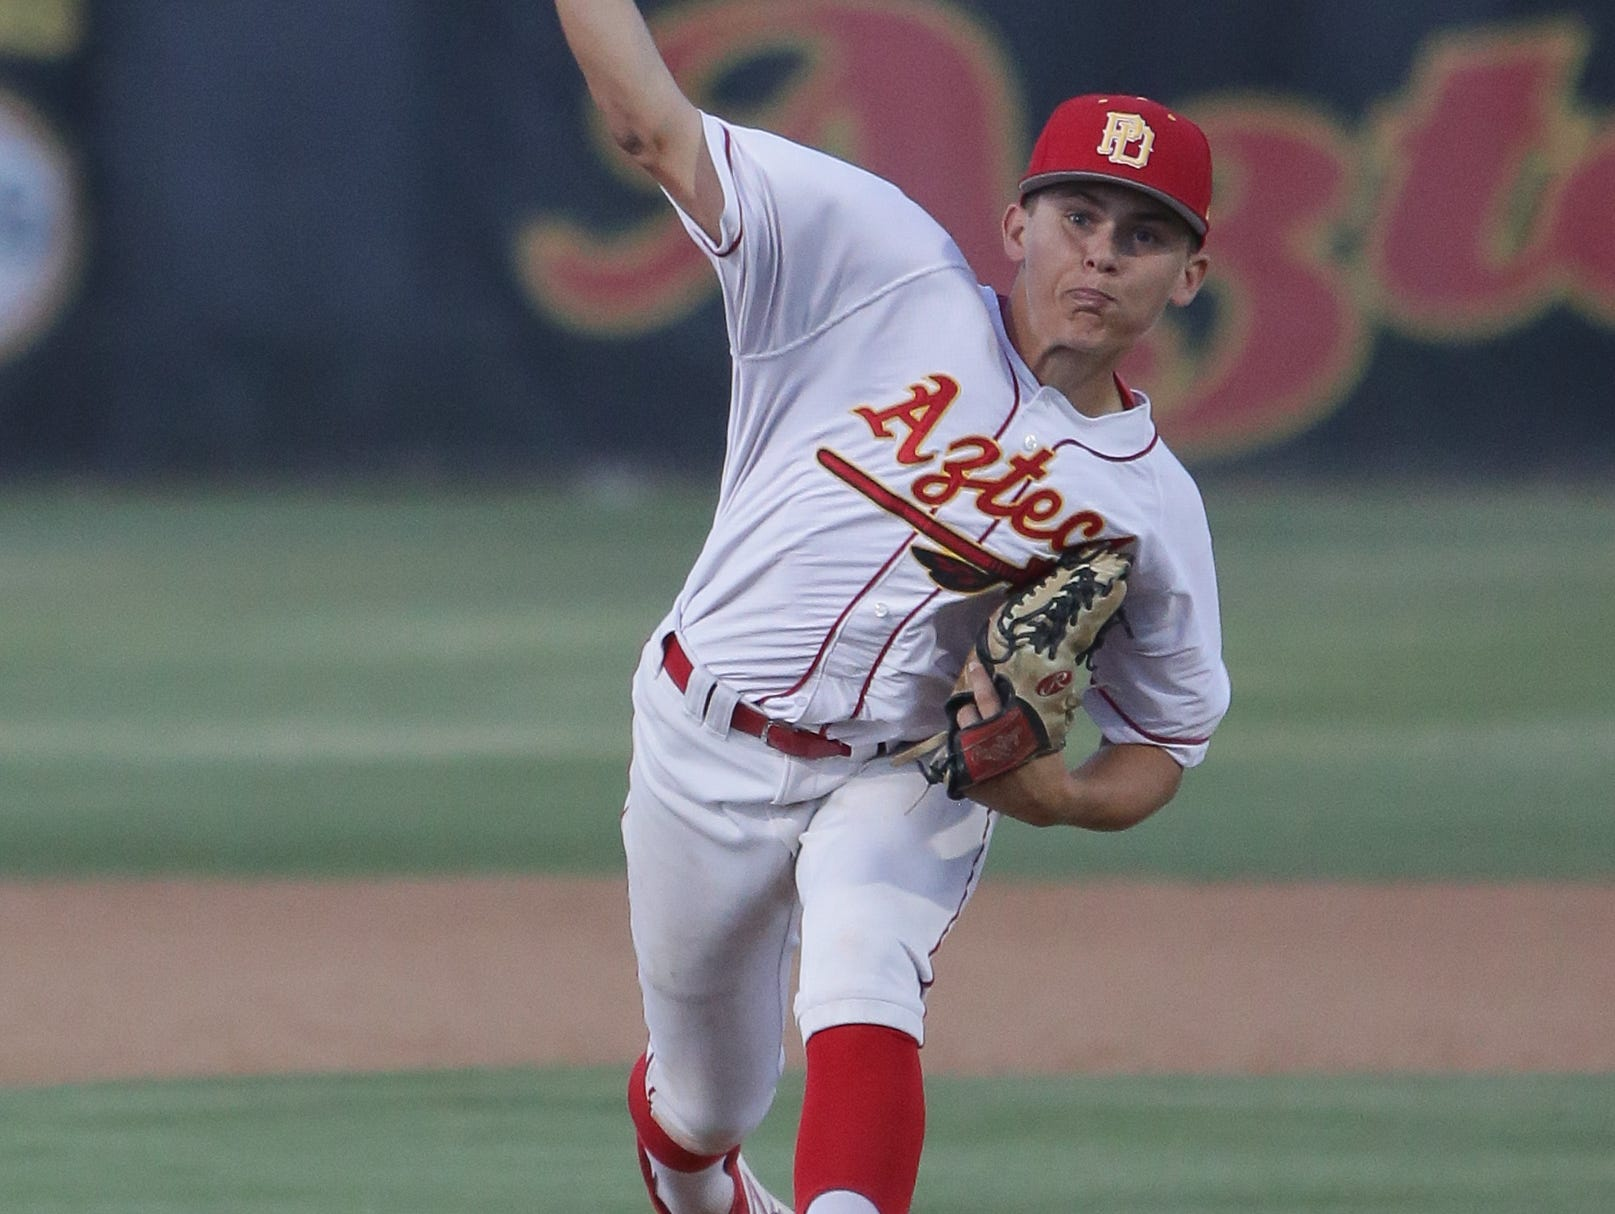 After losing starting pitcher Jeremiah Estrada in the first inning, the Aztecs struggled in their 5-0 loss to Corona.